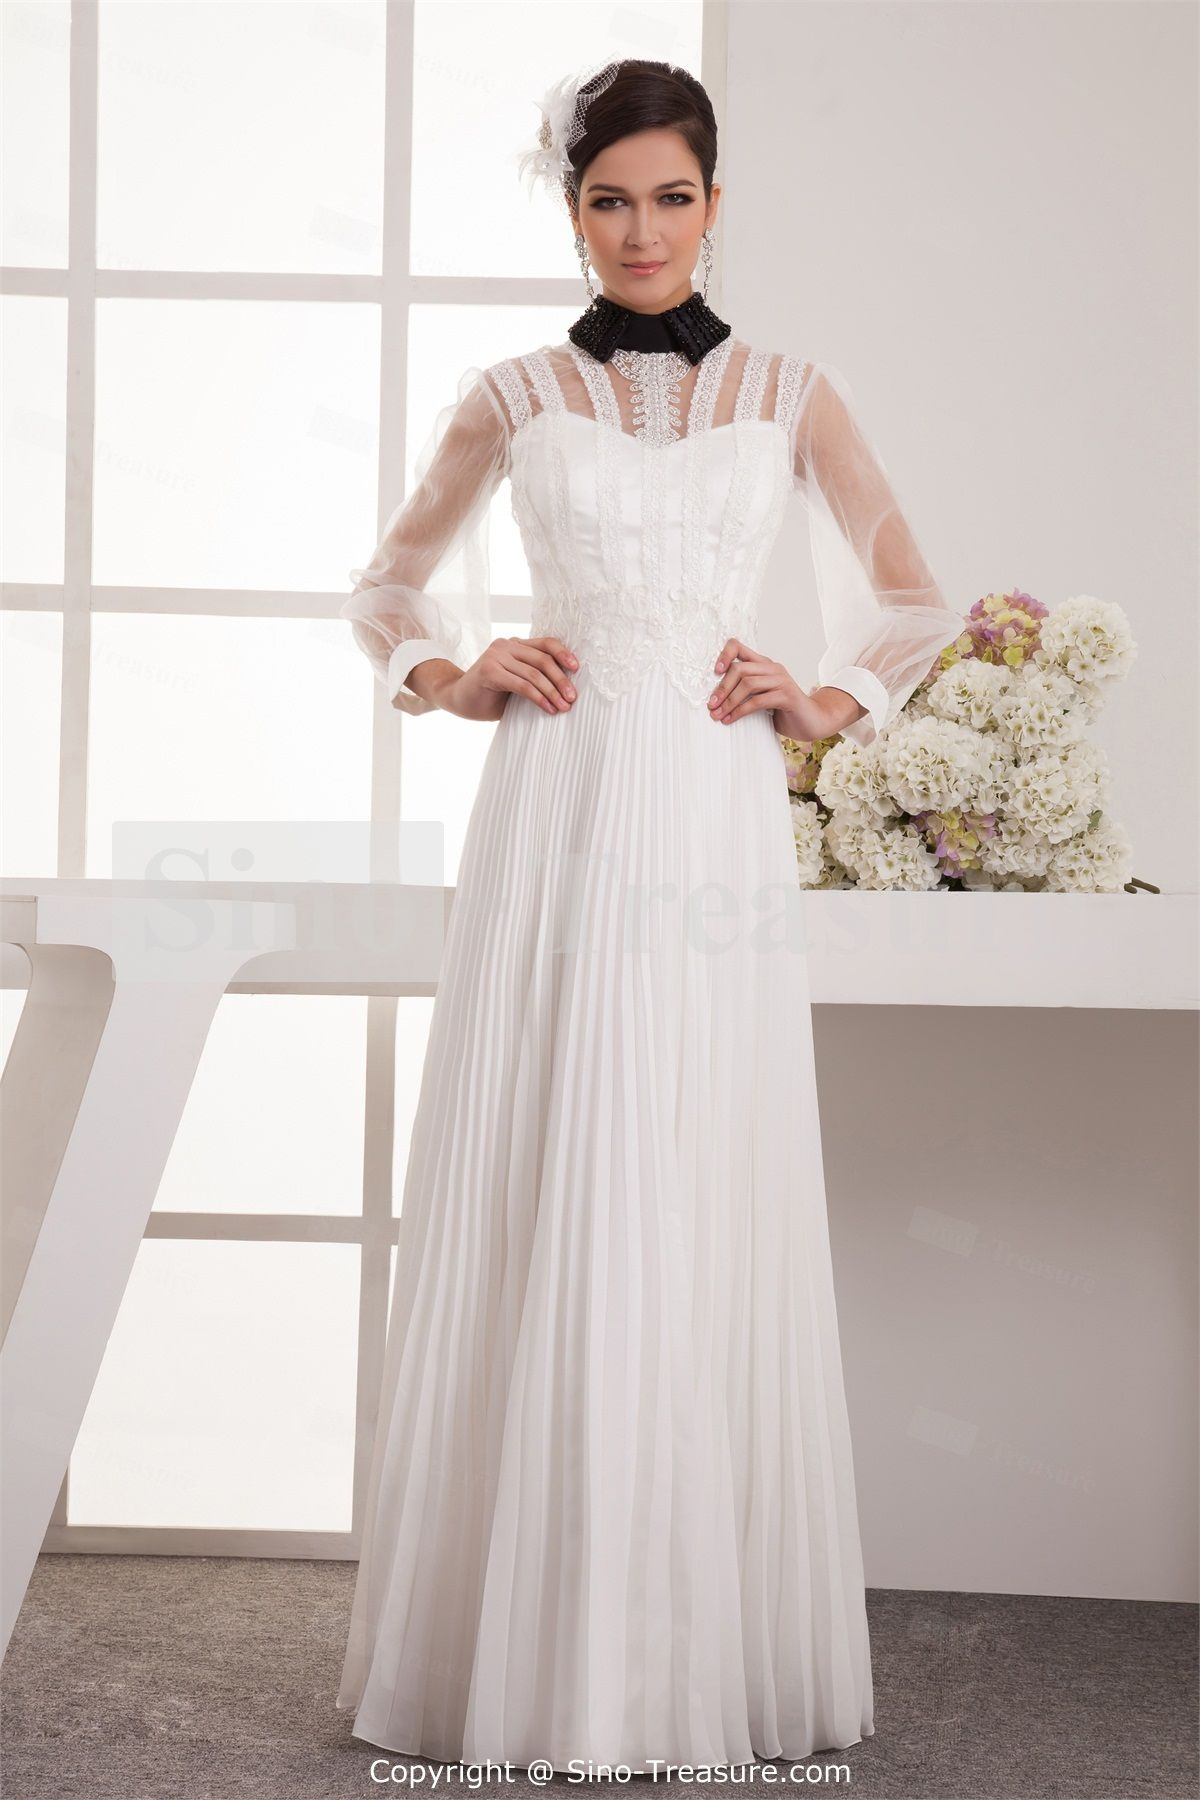 Wedding dresses with halter colored black and ivory wedding dress